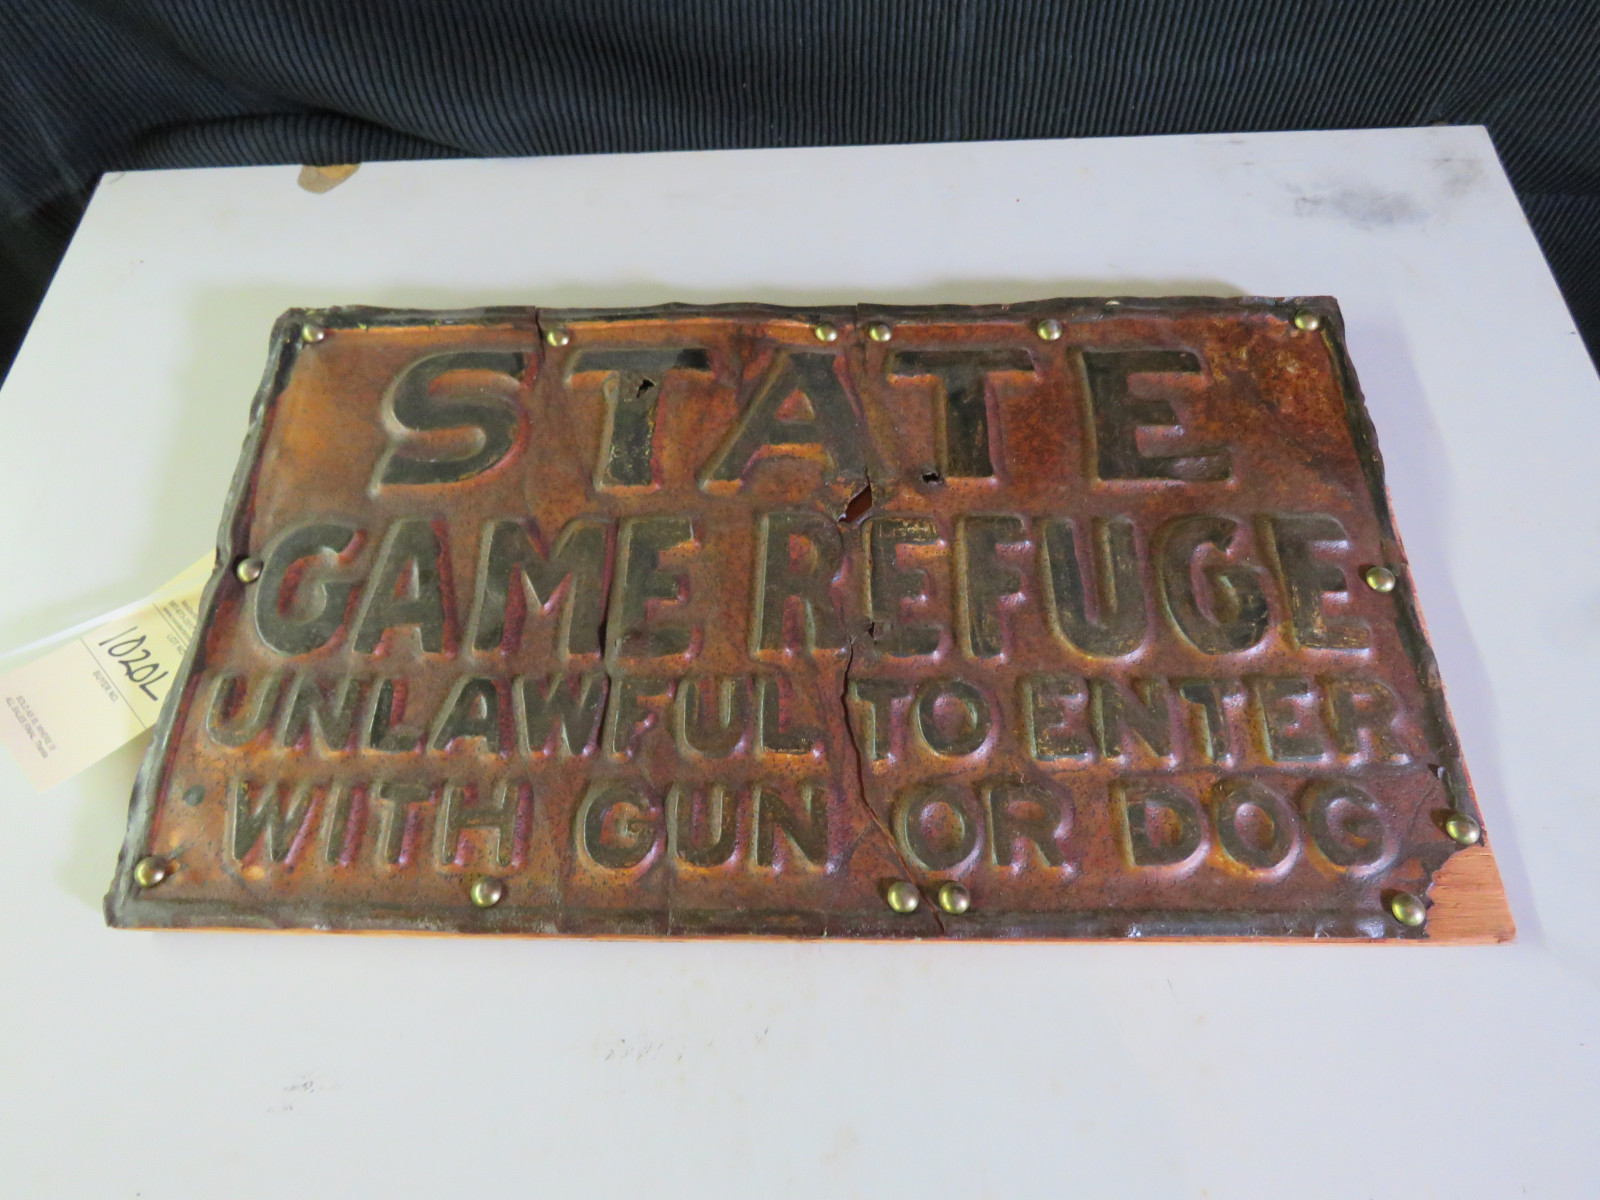 State Game Refuge Sign - Image 1